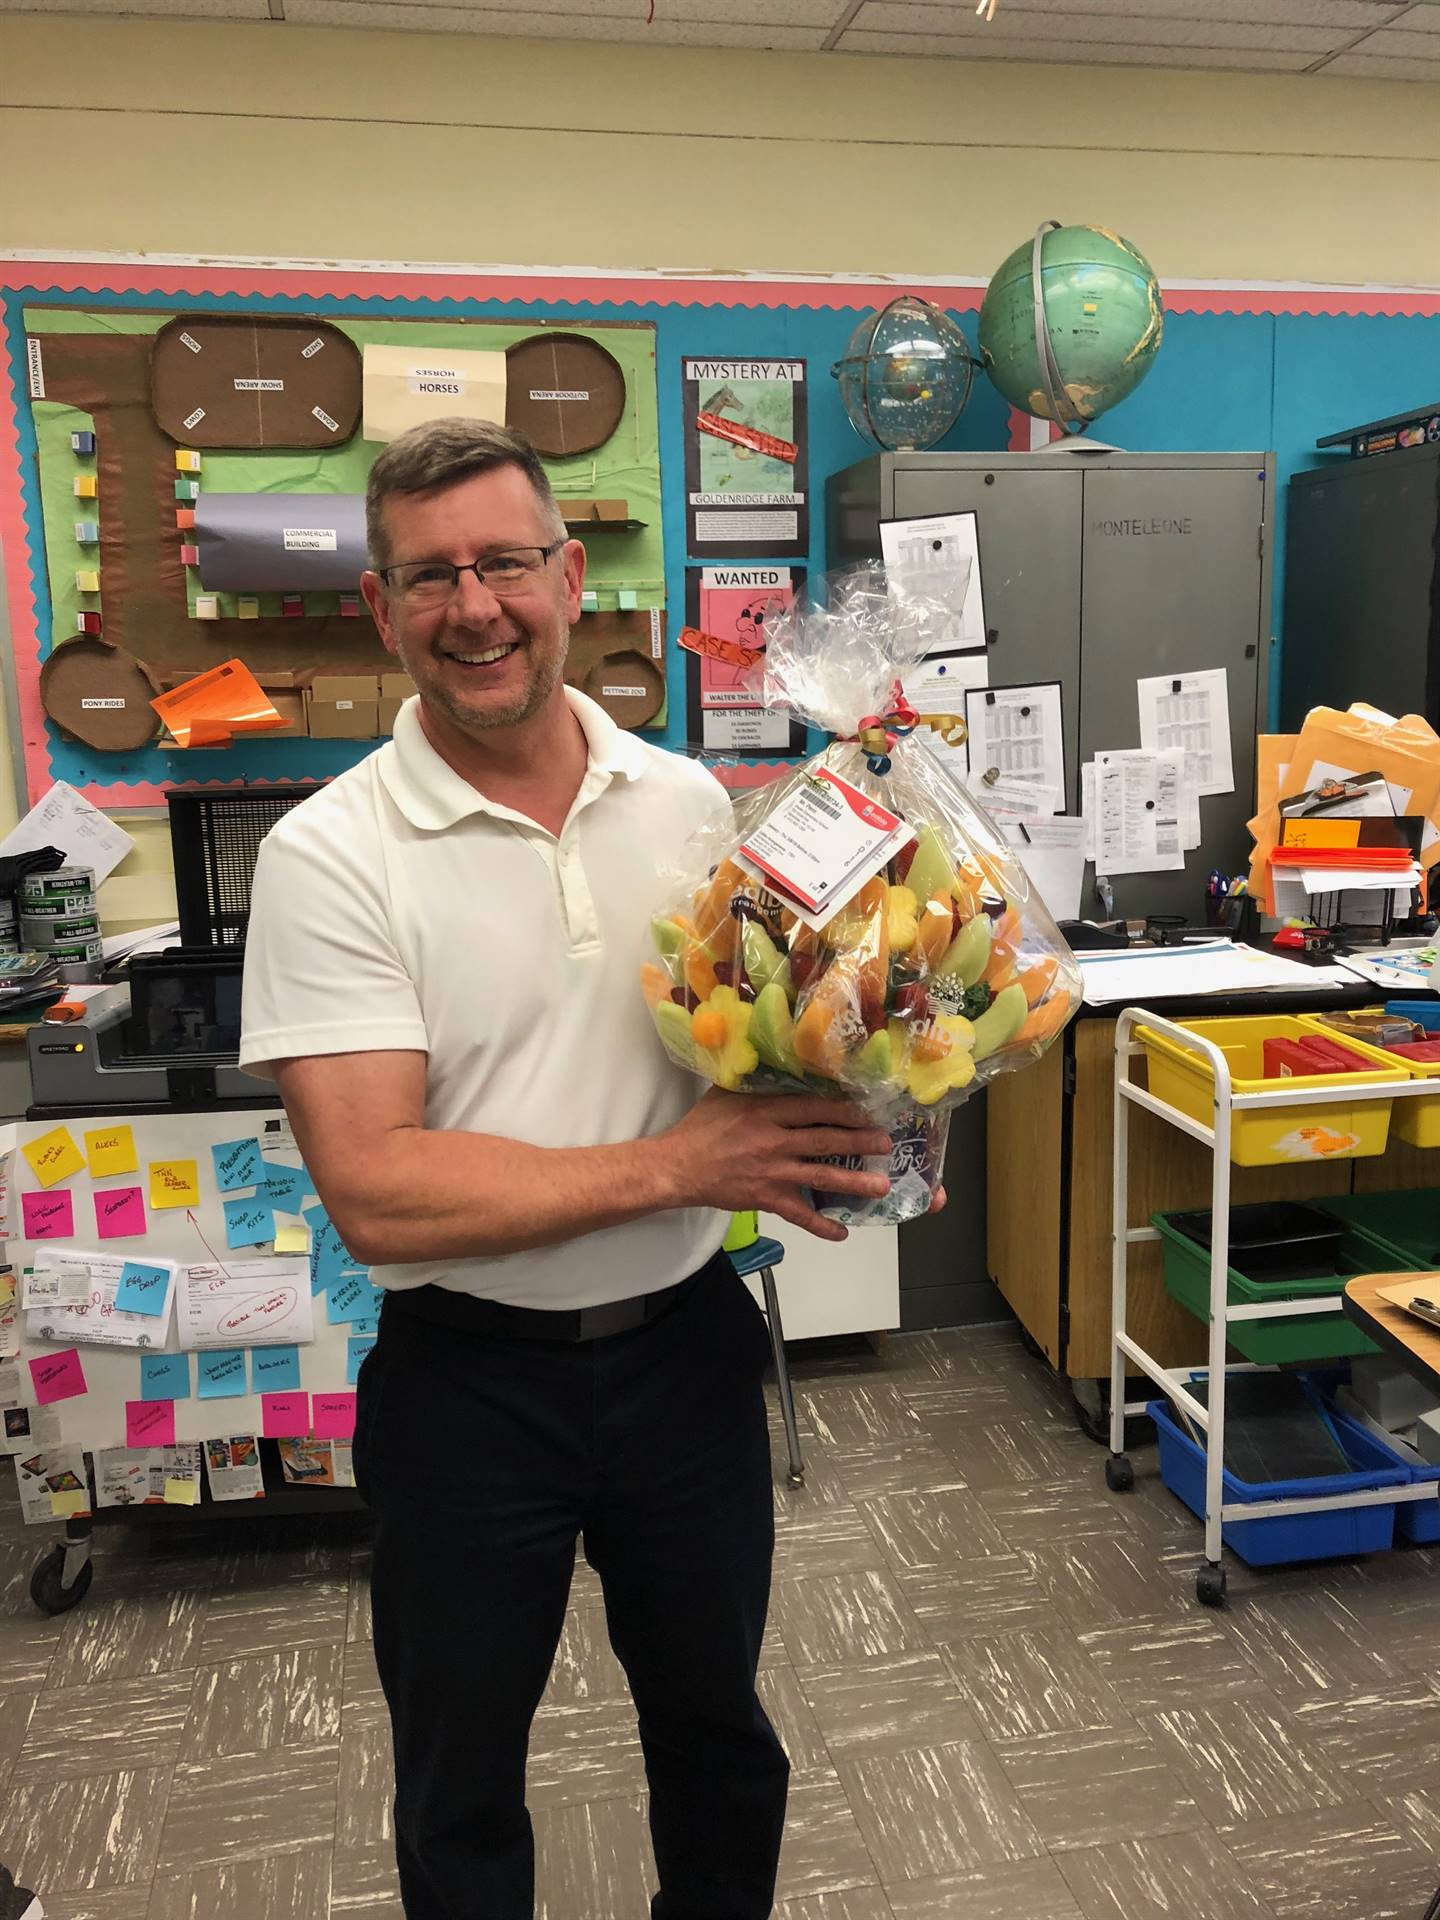 Mr. Penn holding Edible Arrangement from his GATE students.